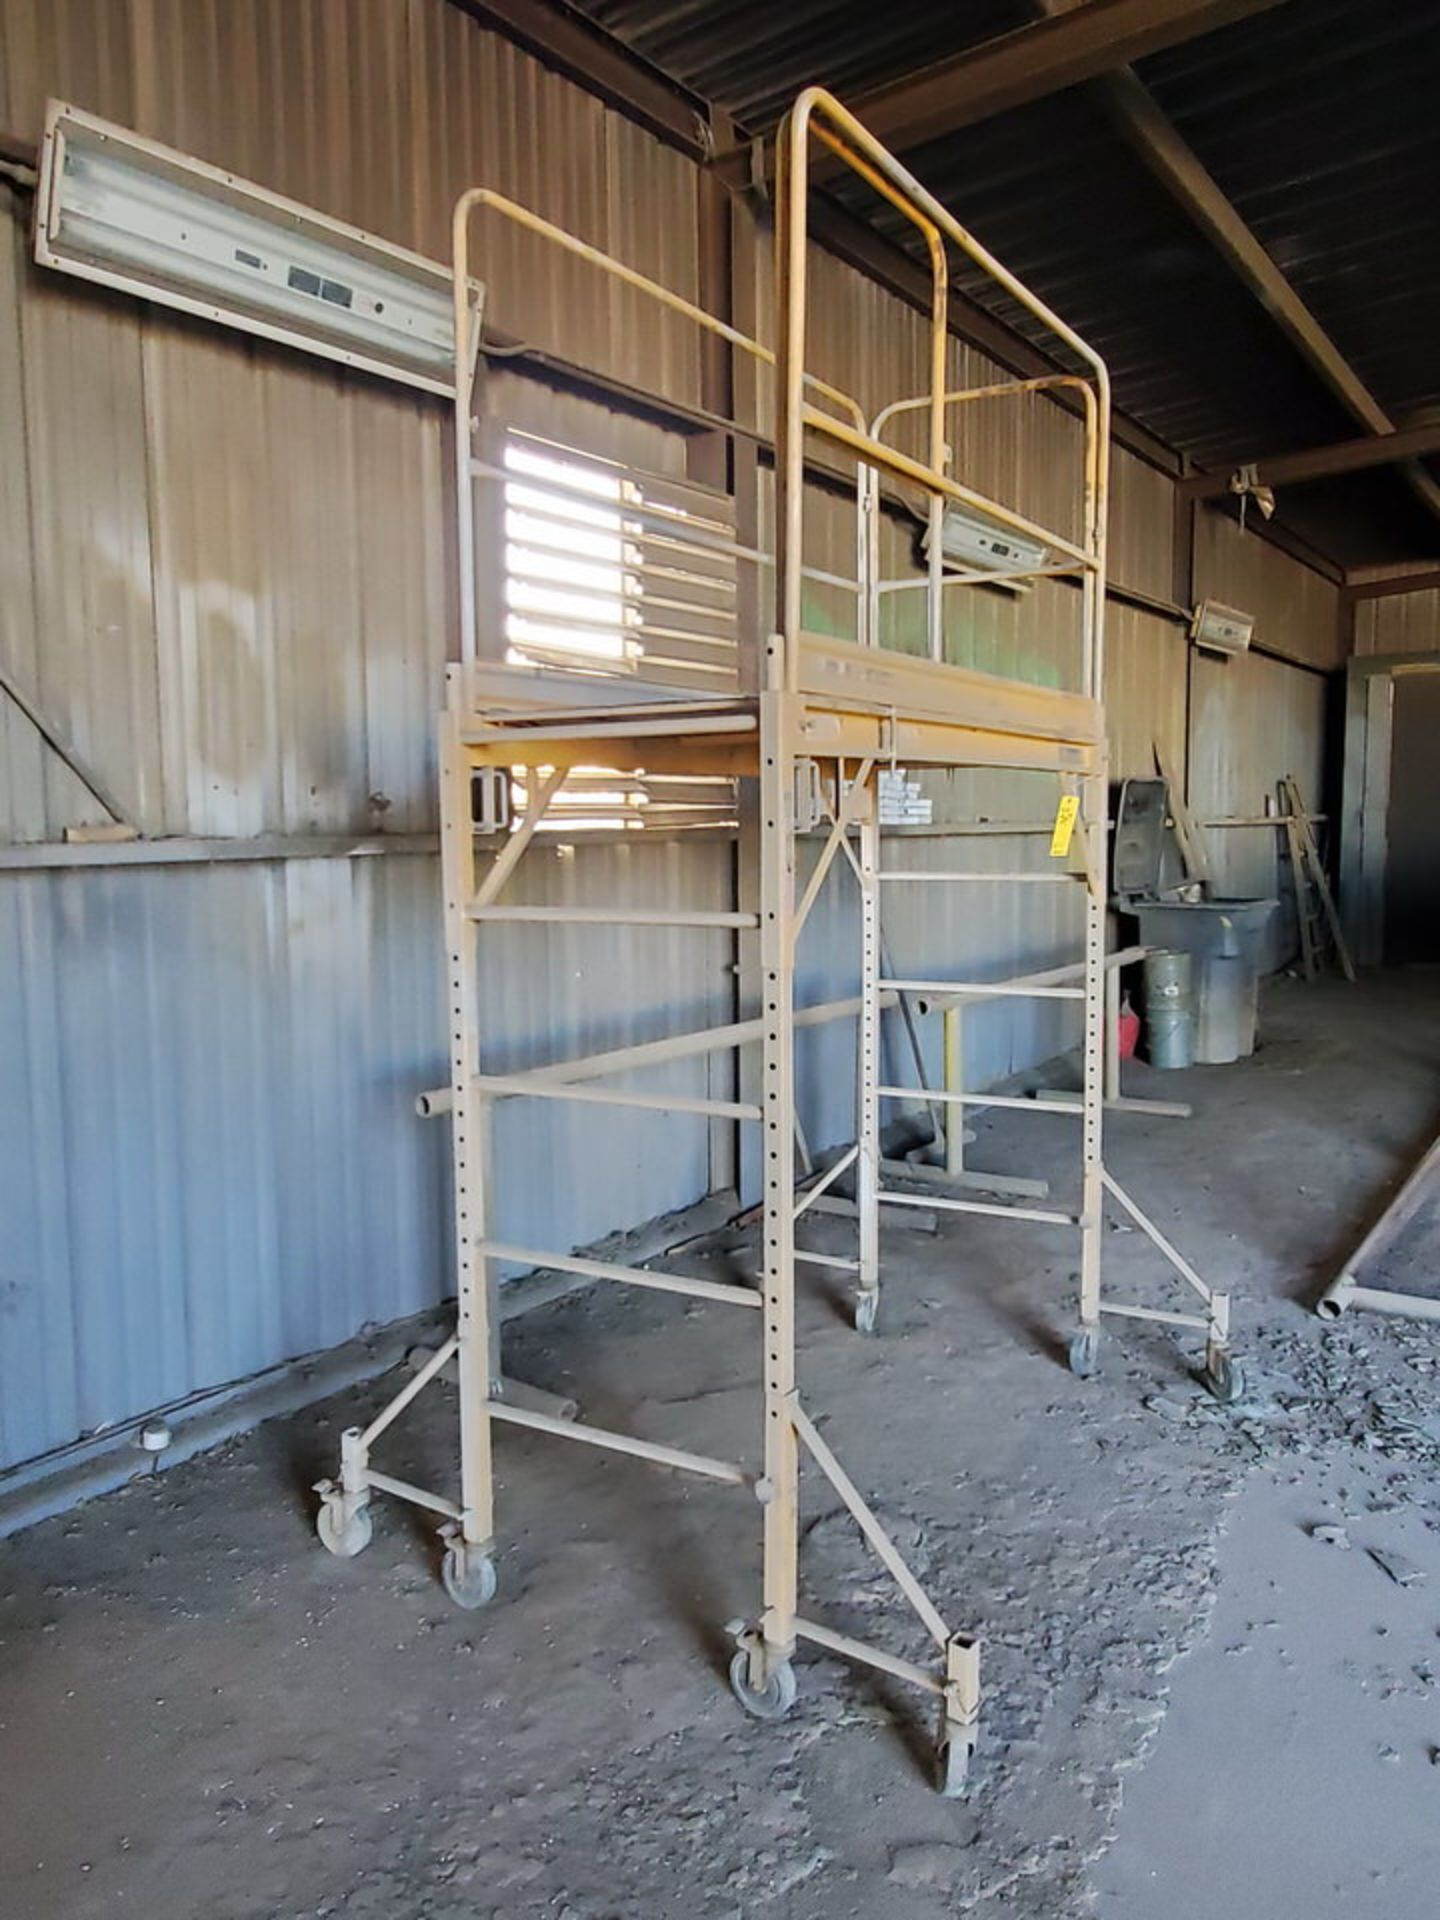 Scaffolds - Image 3 of 5